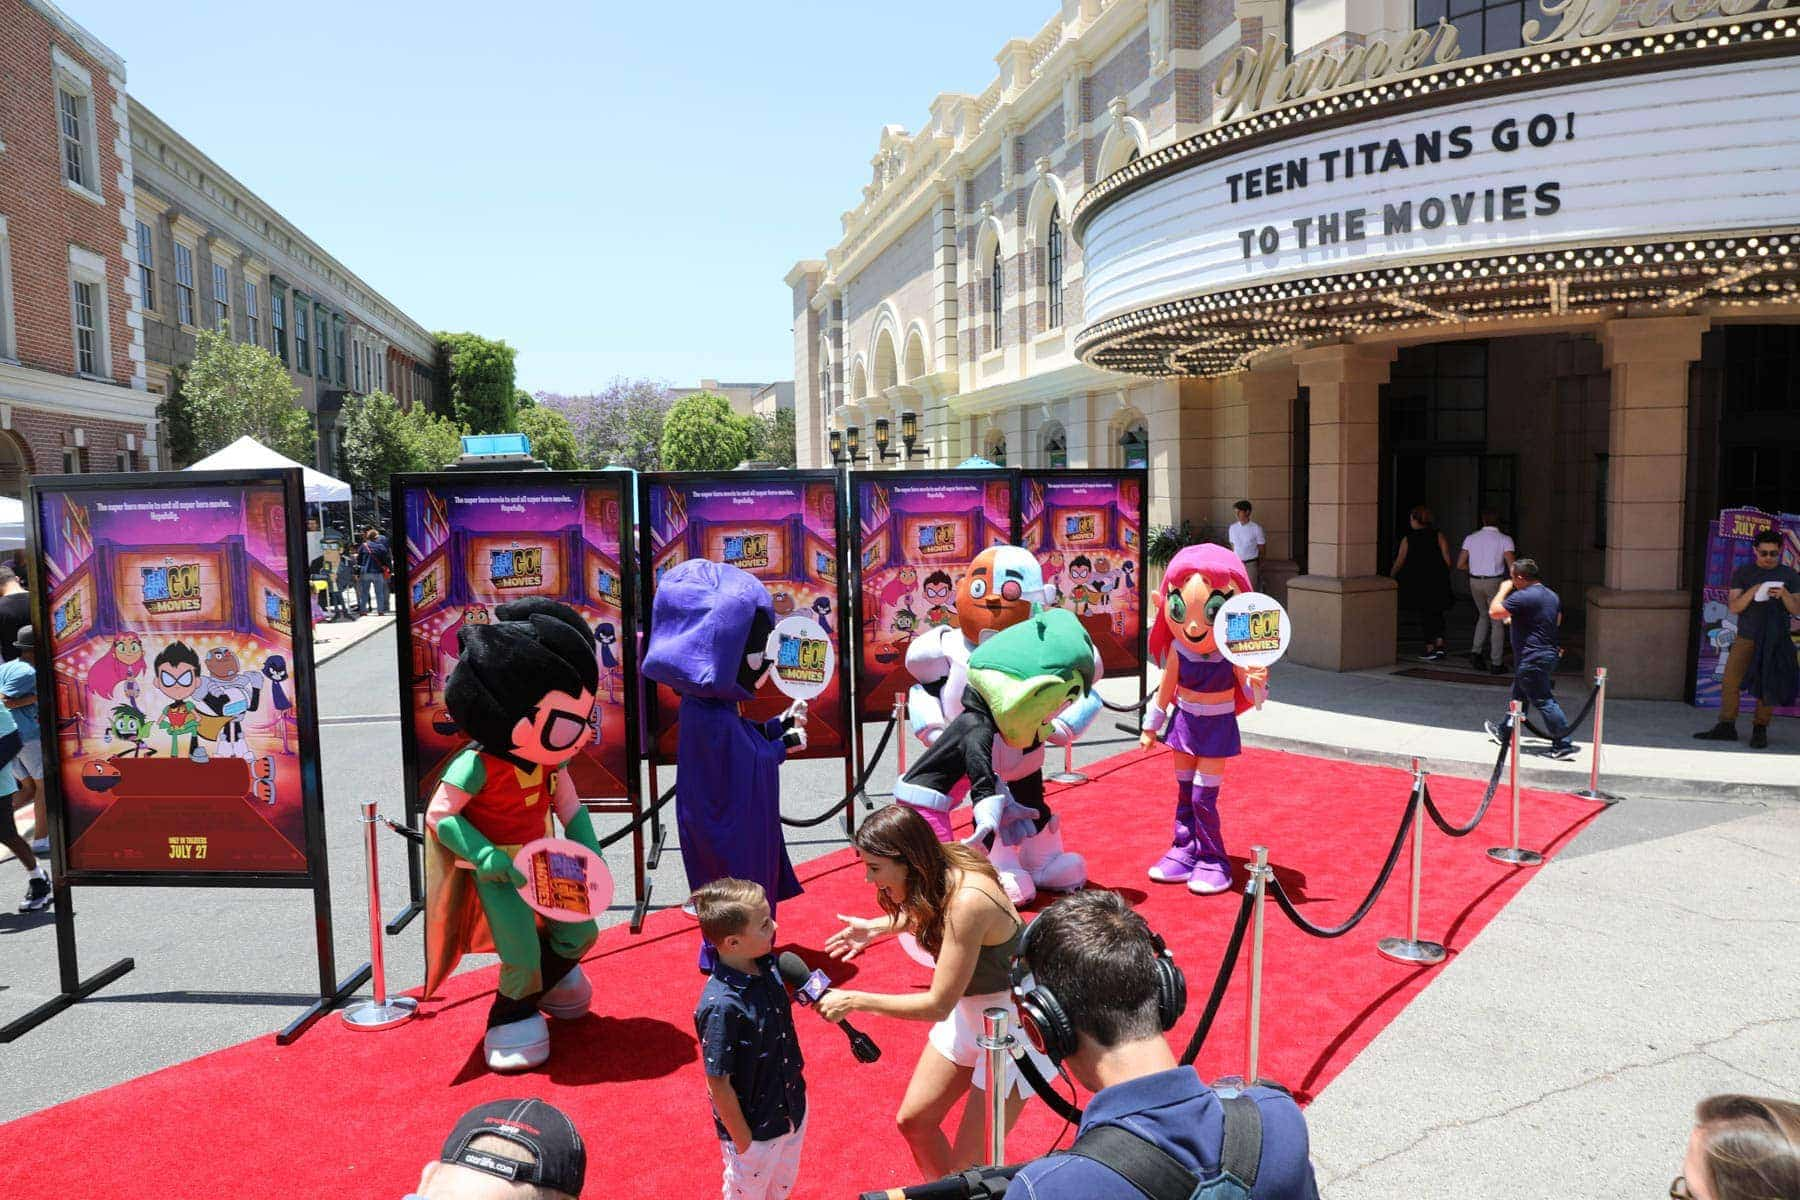 Teen Titans Go To The Movies Mascots Dancing while A lady interviews a kid #hollywood #warnerbrothers #teentitansgotothemovies #citygirlgonemom